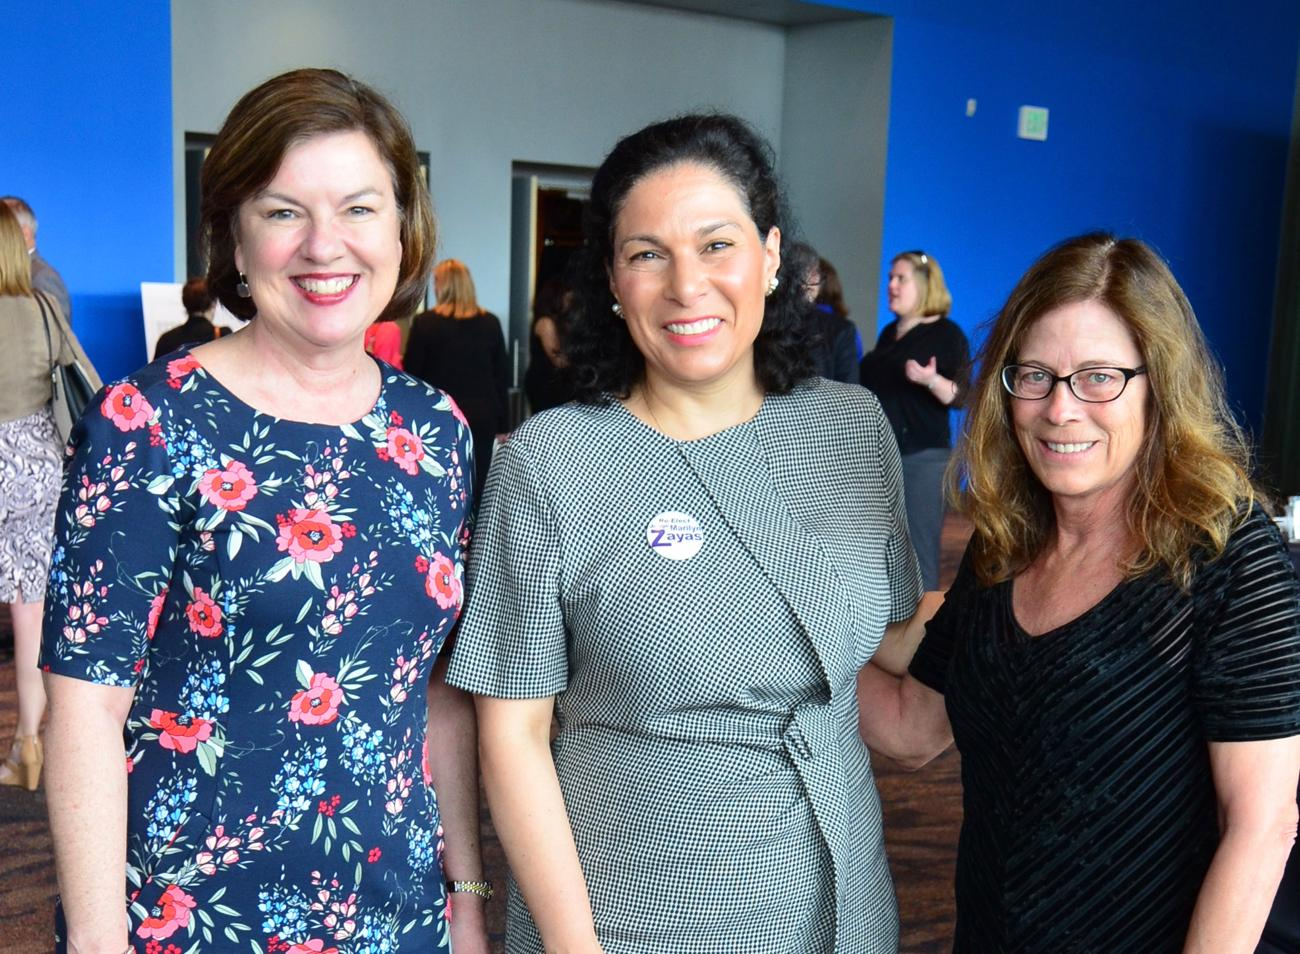 Molly Leonard, Judge Marilyn Zayas, and Margie Slagle / Image: Leah Zipperstein, Cincinnati Refined // Published: 5.10.18